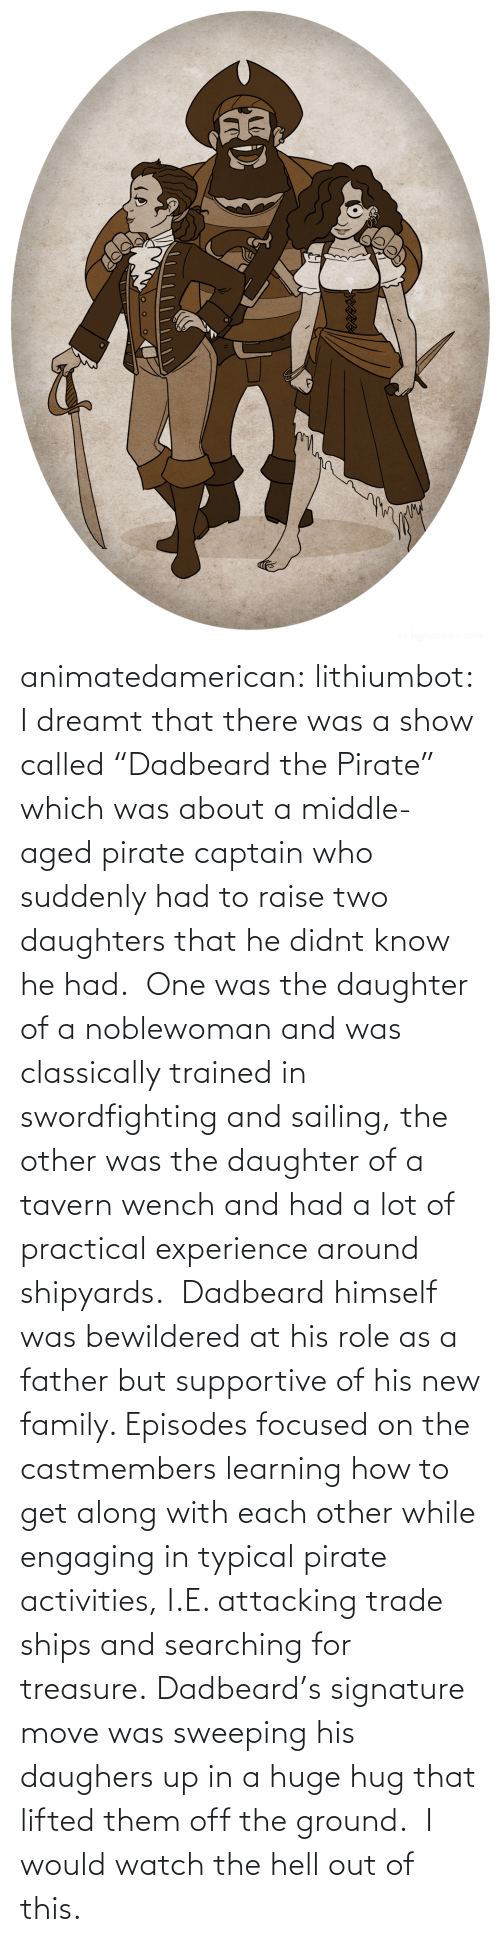 "Family, Tumblr, and Blog: animatedamerican: lithiumbot:  I dreamt that there was a show called ""Dadbeard the Pirate"" which was about a middle-aged pirate captain who suddenly had to raise two daughters that he didnt know he had.  One was the daughter of a noblewoman and was classically trained in swordfighting and sailing, the other was the daughter of a tavern wench and had a lot of practical experience around shipyards.  Dadbeard himself was bewildered at his role as a father but supportive of his new family. Episodes focused on the castmembers learning how to get along with each other while engaging in typical pirate activities, I.E. attacking trade ships and searching for treasure. Dadbeard's signature move was sweeping his daughers up in a huge hug that lifted them off the ground.   I would watch the hell out of this."